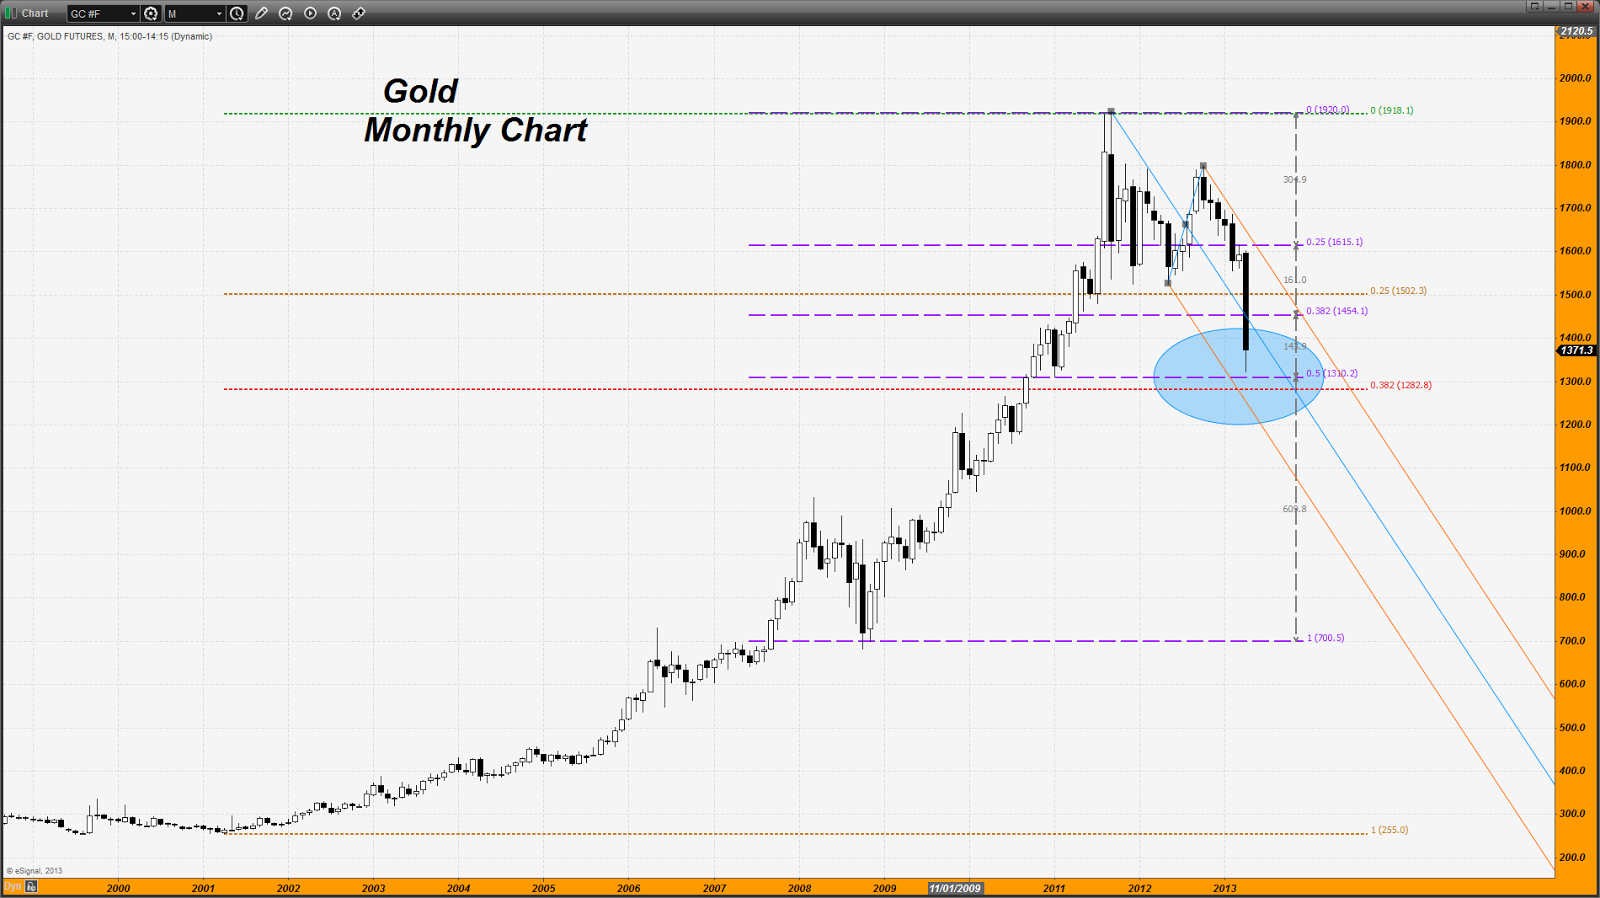 Gold Chart 2013 images: wenimage.com/gold+chart+2013